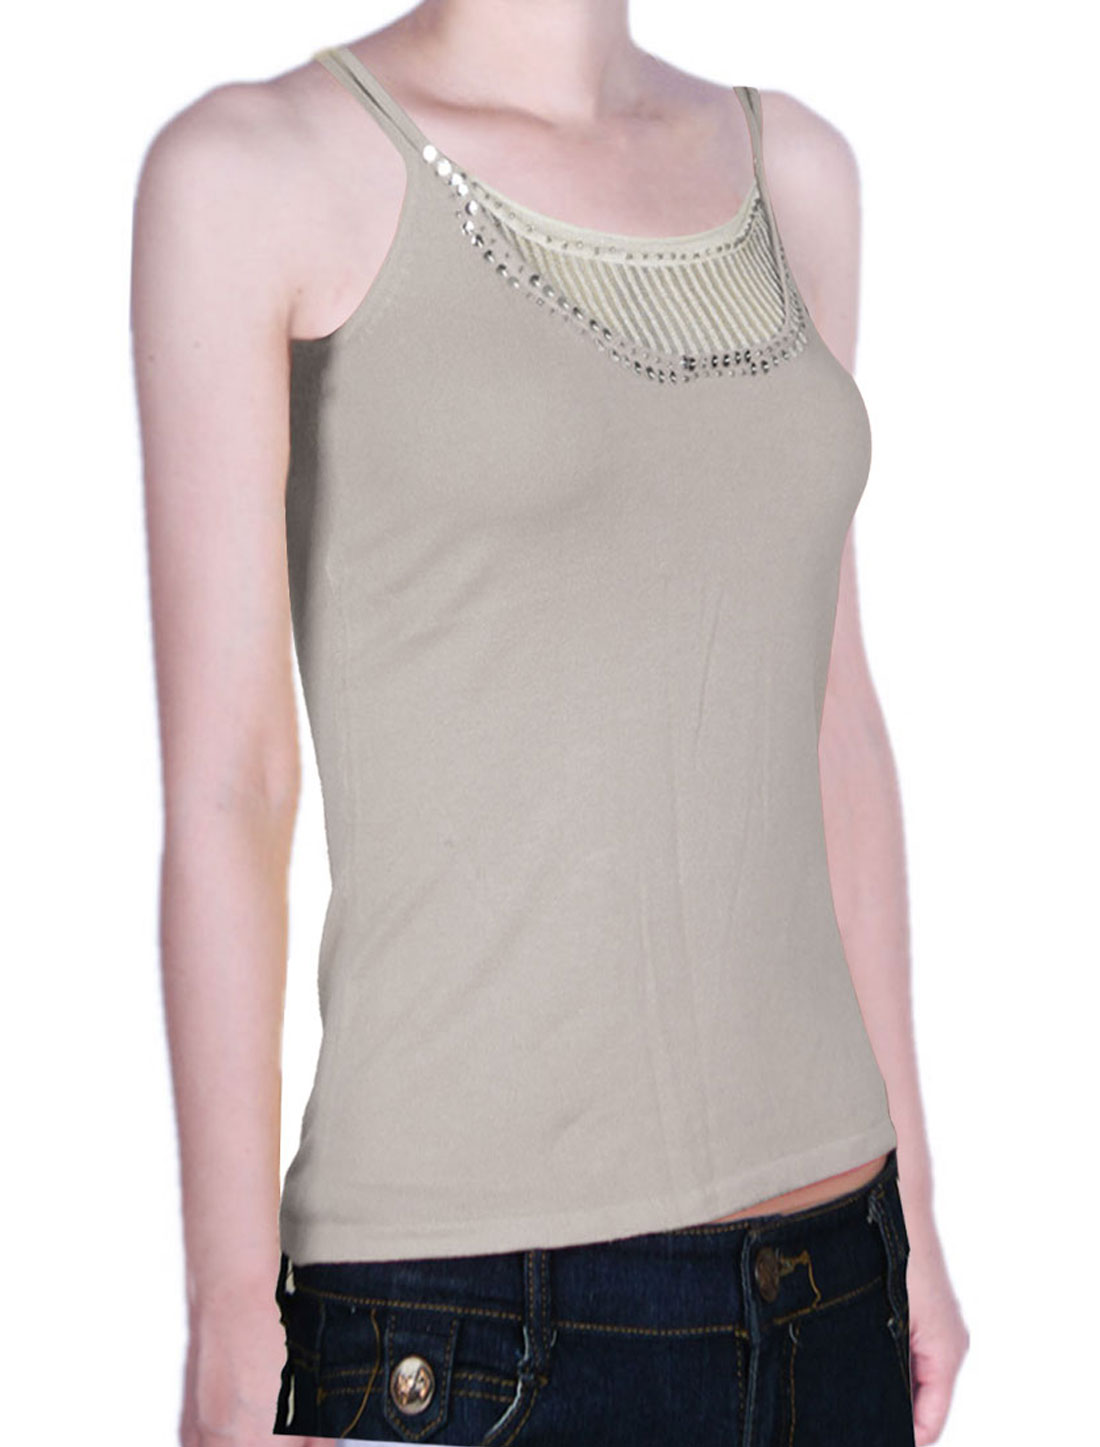 Women Bead Sequin Decor Double Strap Basic Tank Top Shirt Gray XS